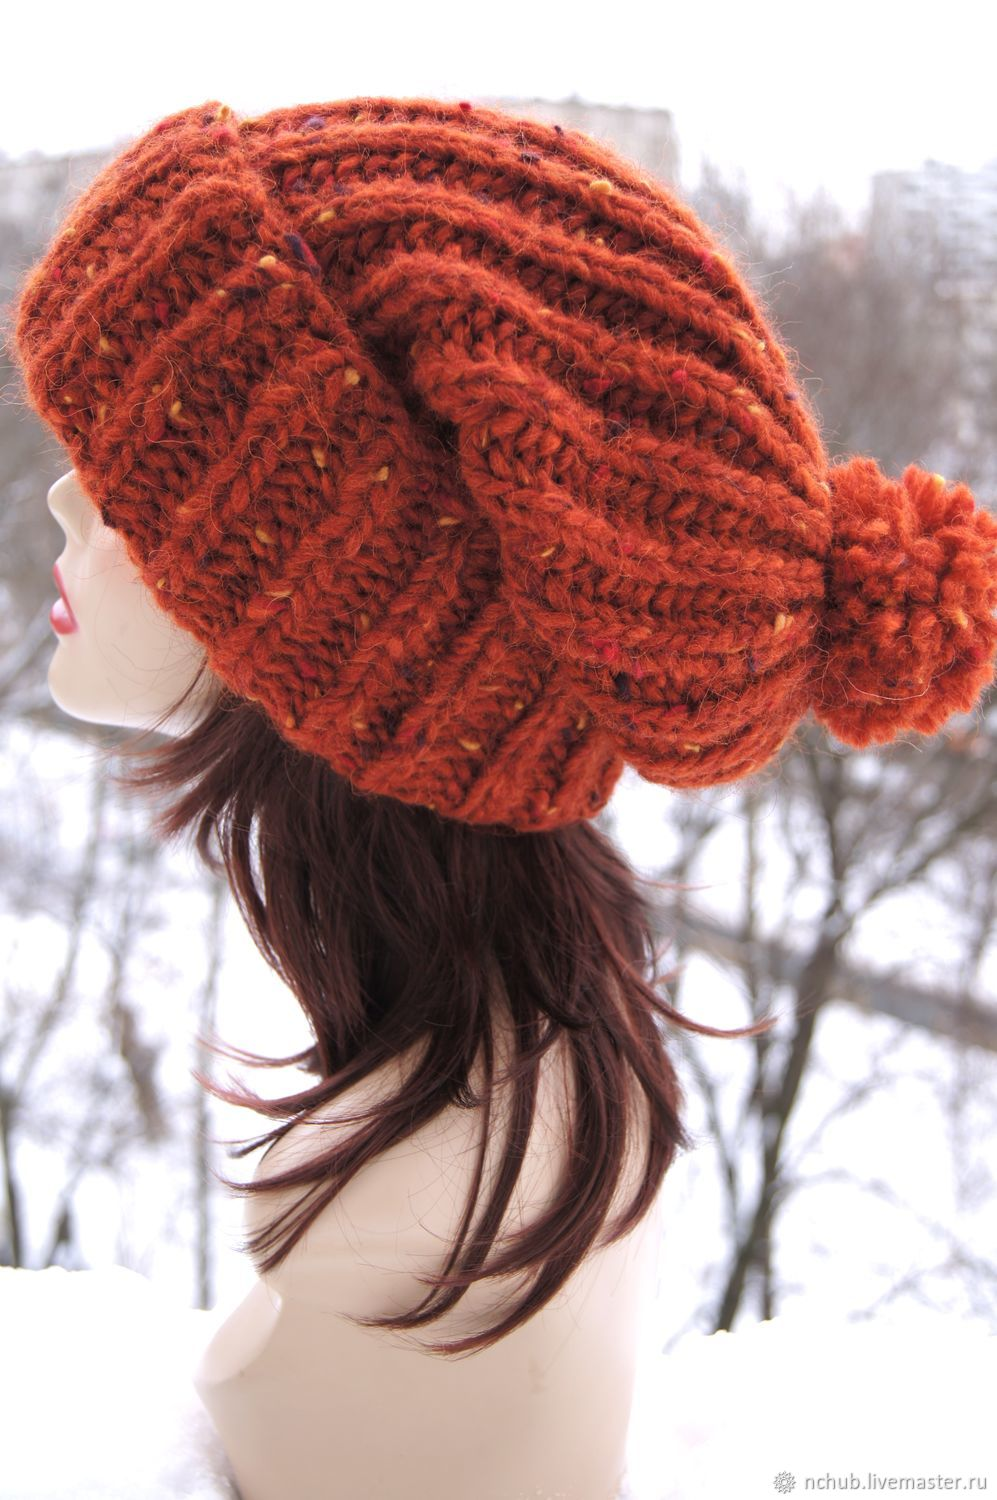 Orange knitted Hat made of 100% Icelandic wool, Caps, Moscow,  Фото №1